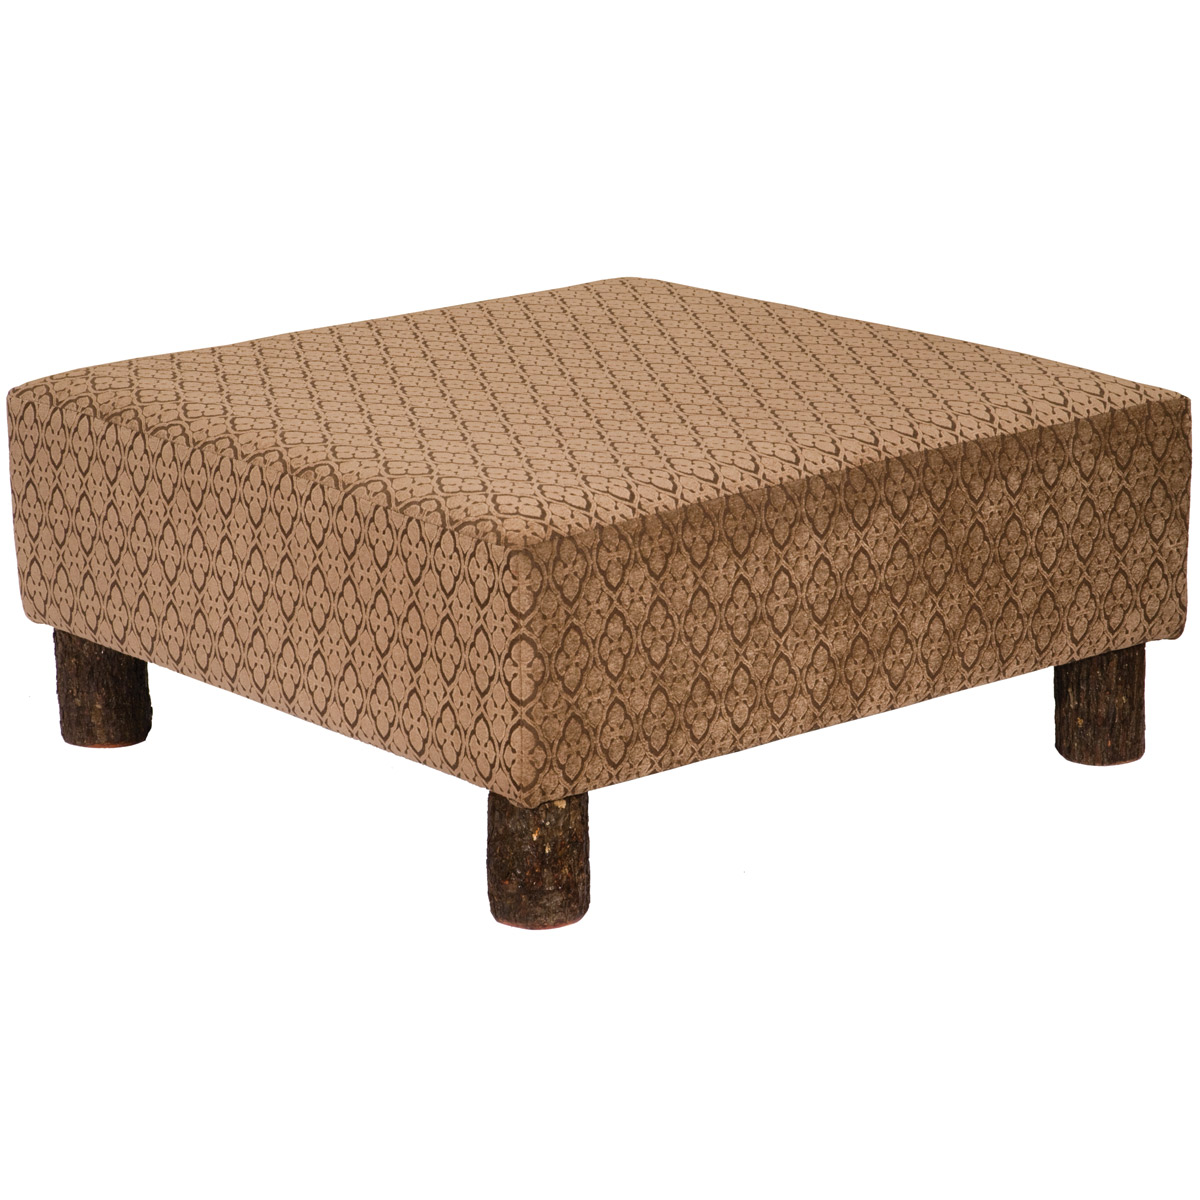 Bradley Coffee Table.Upholstered Coffee Table Ottoman With Hickory Legs Bradley Fabric Overstock